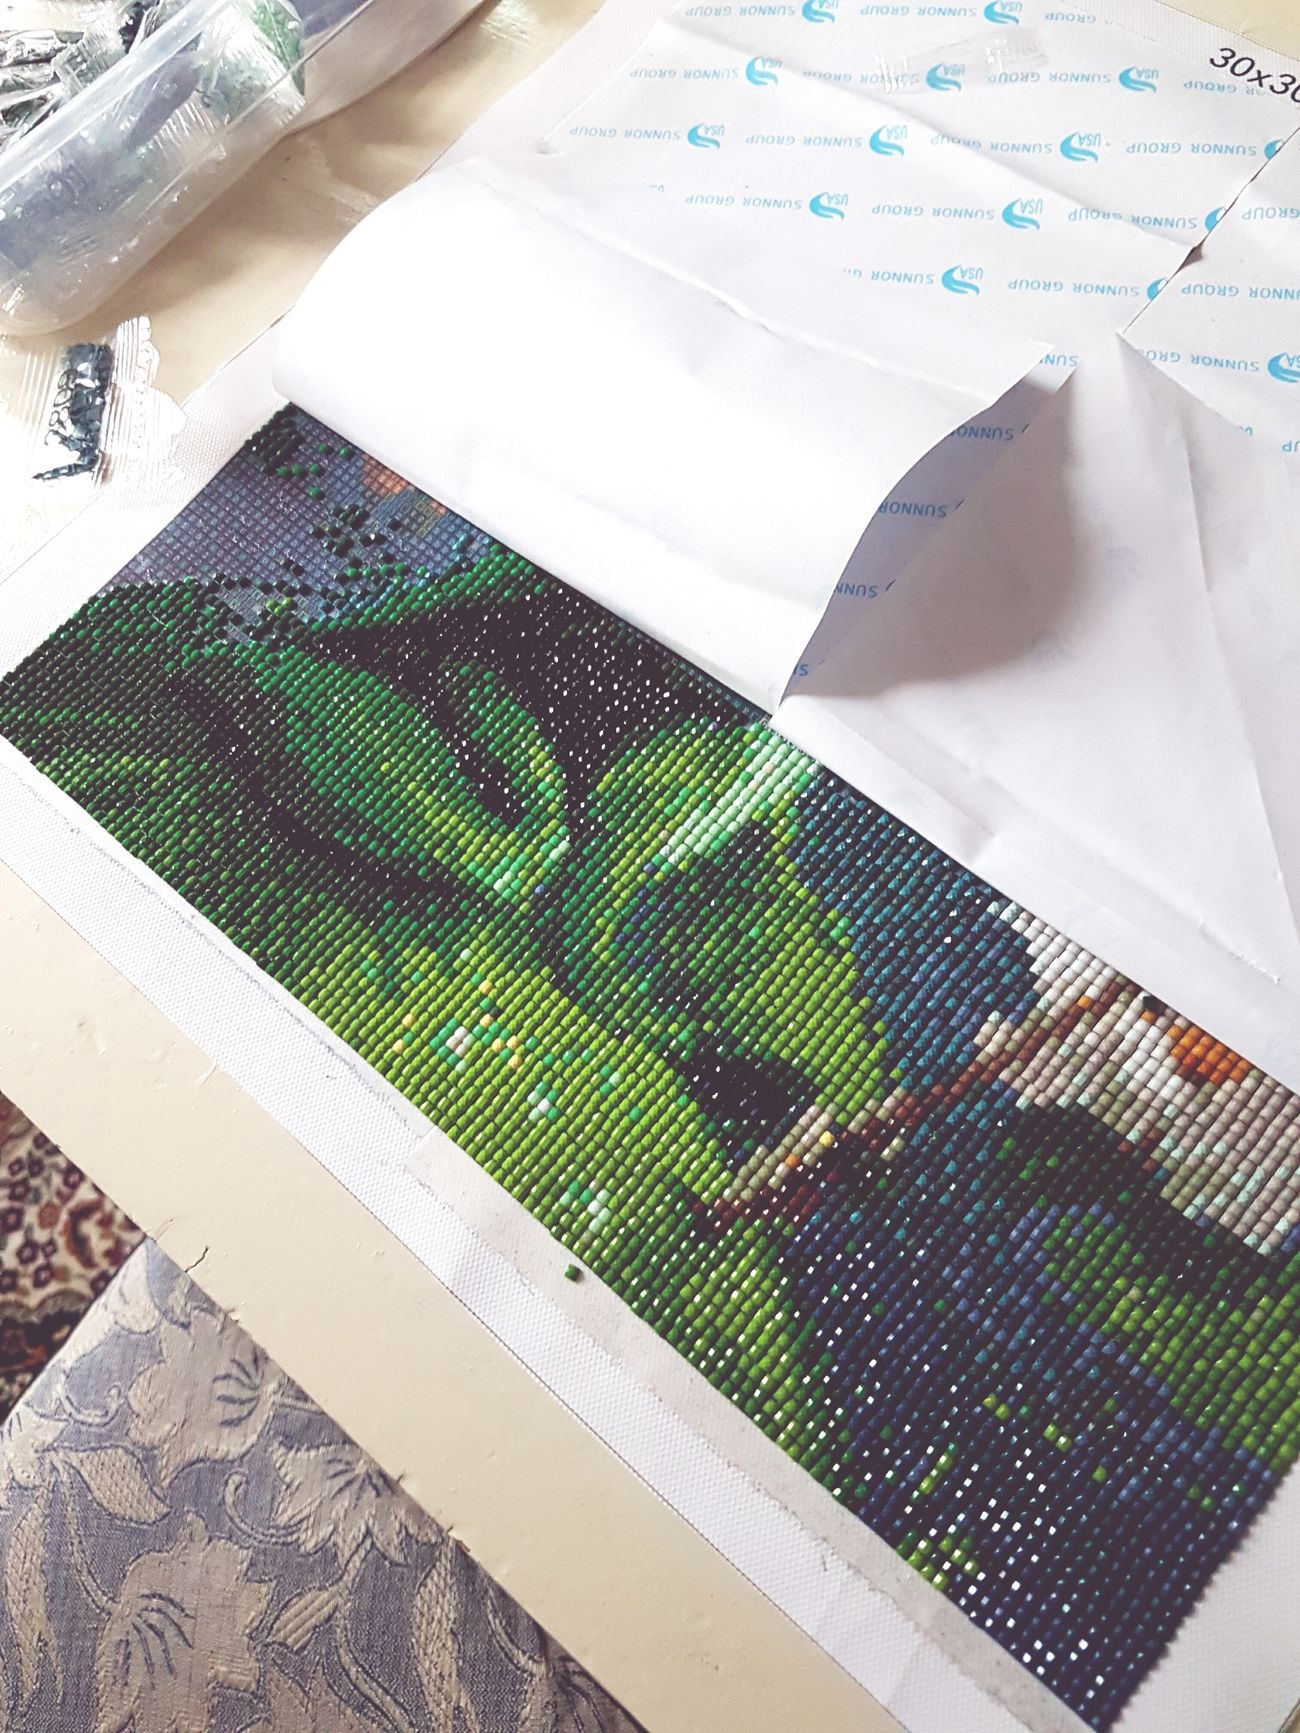 crafty mumin ;) Pearls Crafty Working Frog Princess Mosaic Embrodery Embrodery